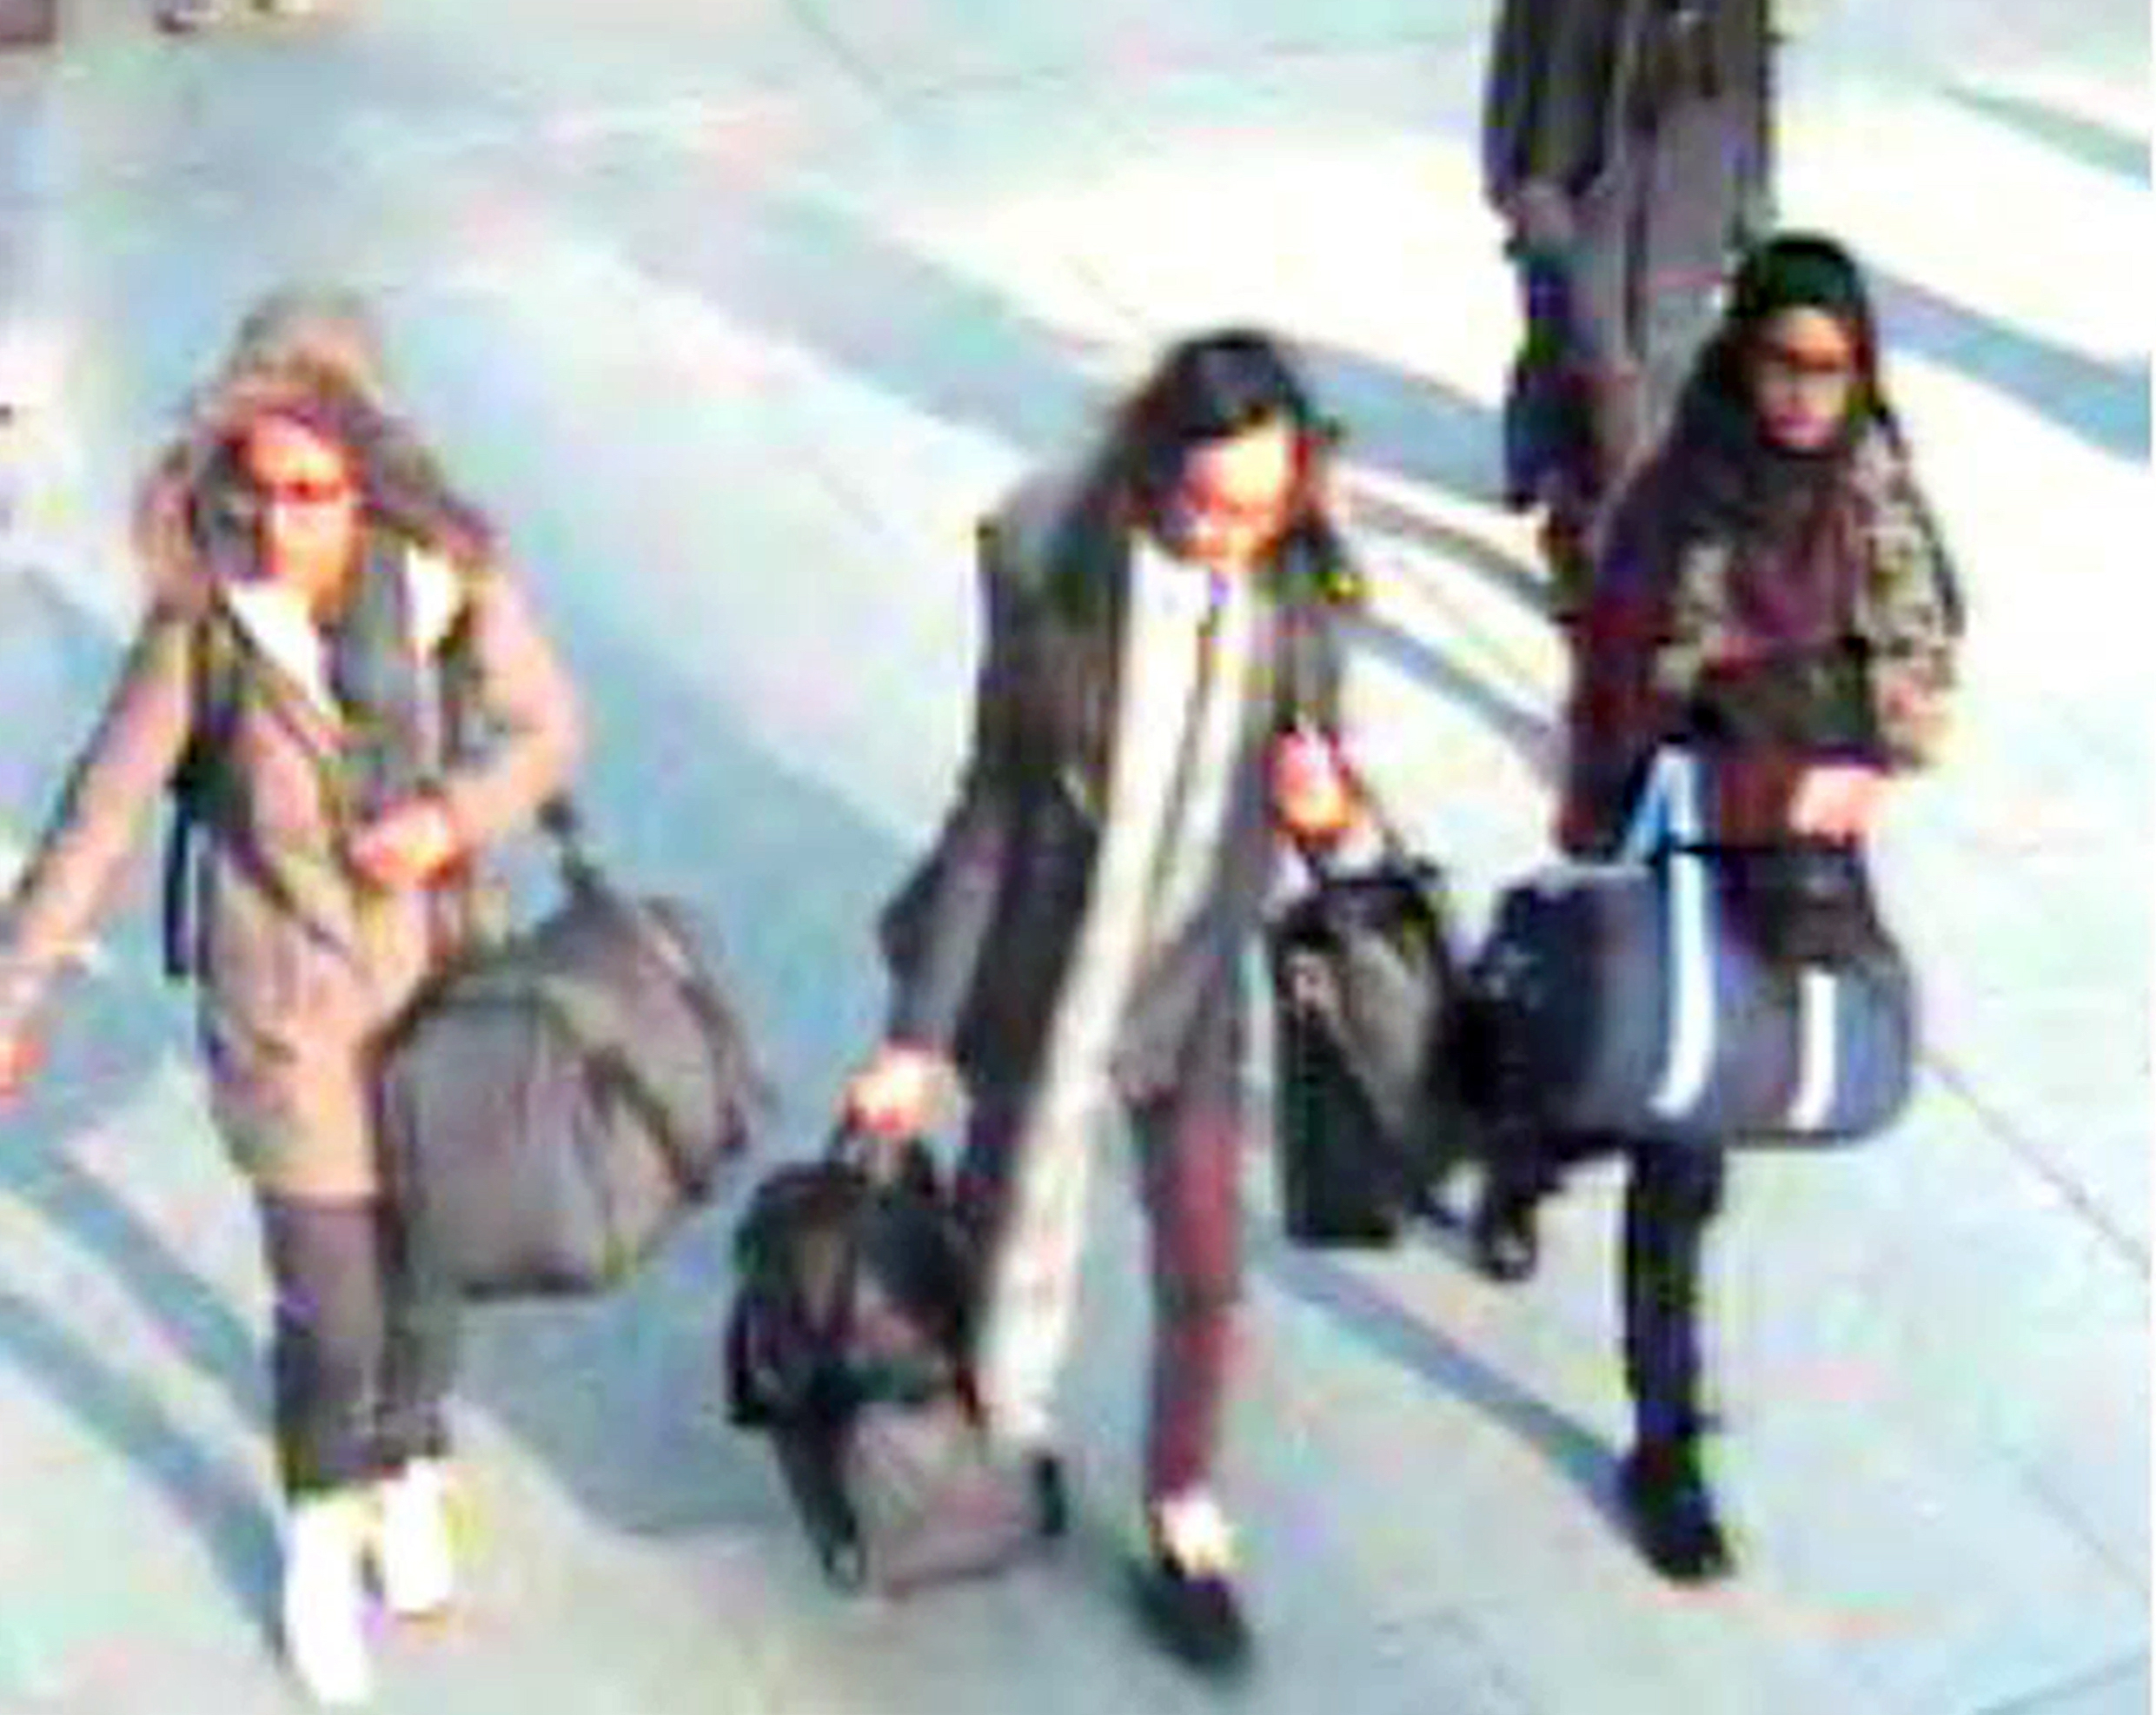 Handout still taken from CCTV issued by the Metropolitan Police of (left to right) 15-year-old Amira Abase, Kadiza Sultana,16 and Shamima Begum,15 at Gatwick airport, before they caught their flight to Turkey on Tuesday. The three schoolgirls believed to have fled to Syria to join Islamic State. PRESS ASSOCIATION Photo. Issue date: Sunday February 22, 2015. See PA story POLICE Syria. Photo credit should read: Metropolitan Police/PA Wire  NOTE TO EDITORS: This handout photo may only be used in for editorial reporting purposes for the contemporaneous illustration of events, things or the people in the image or facts mentioned in the caption. Reuse of the picture may require further permission from the copyright holder.